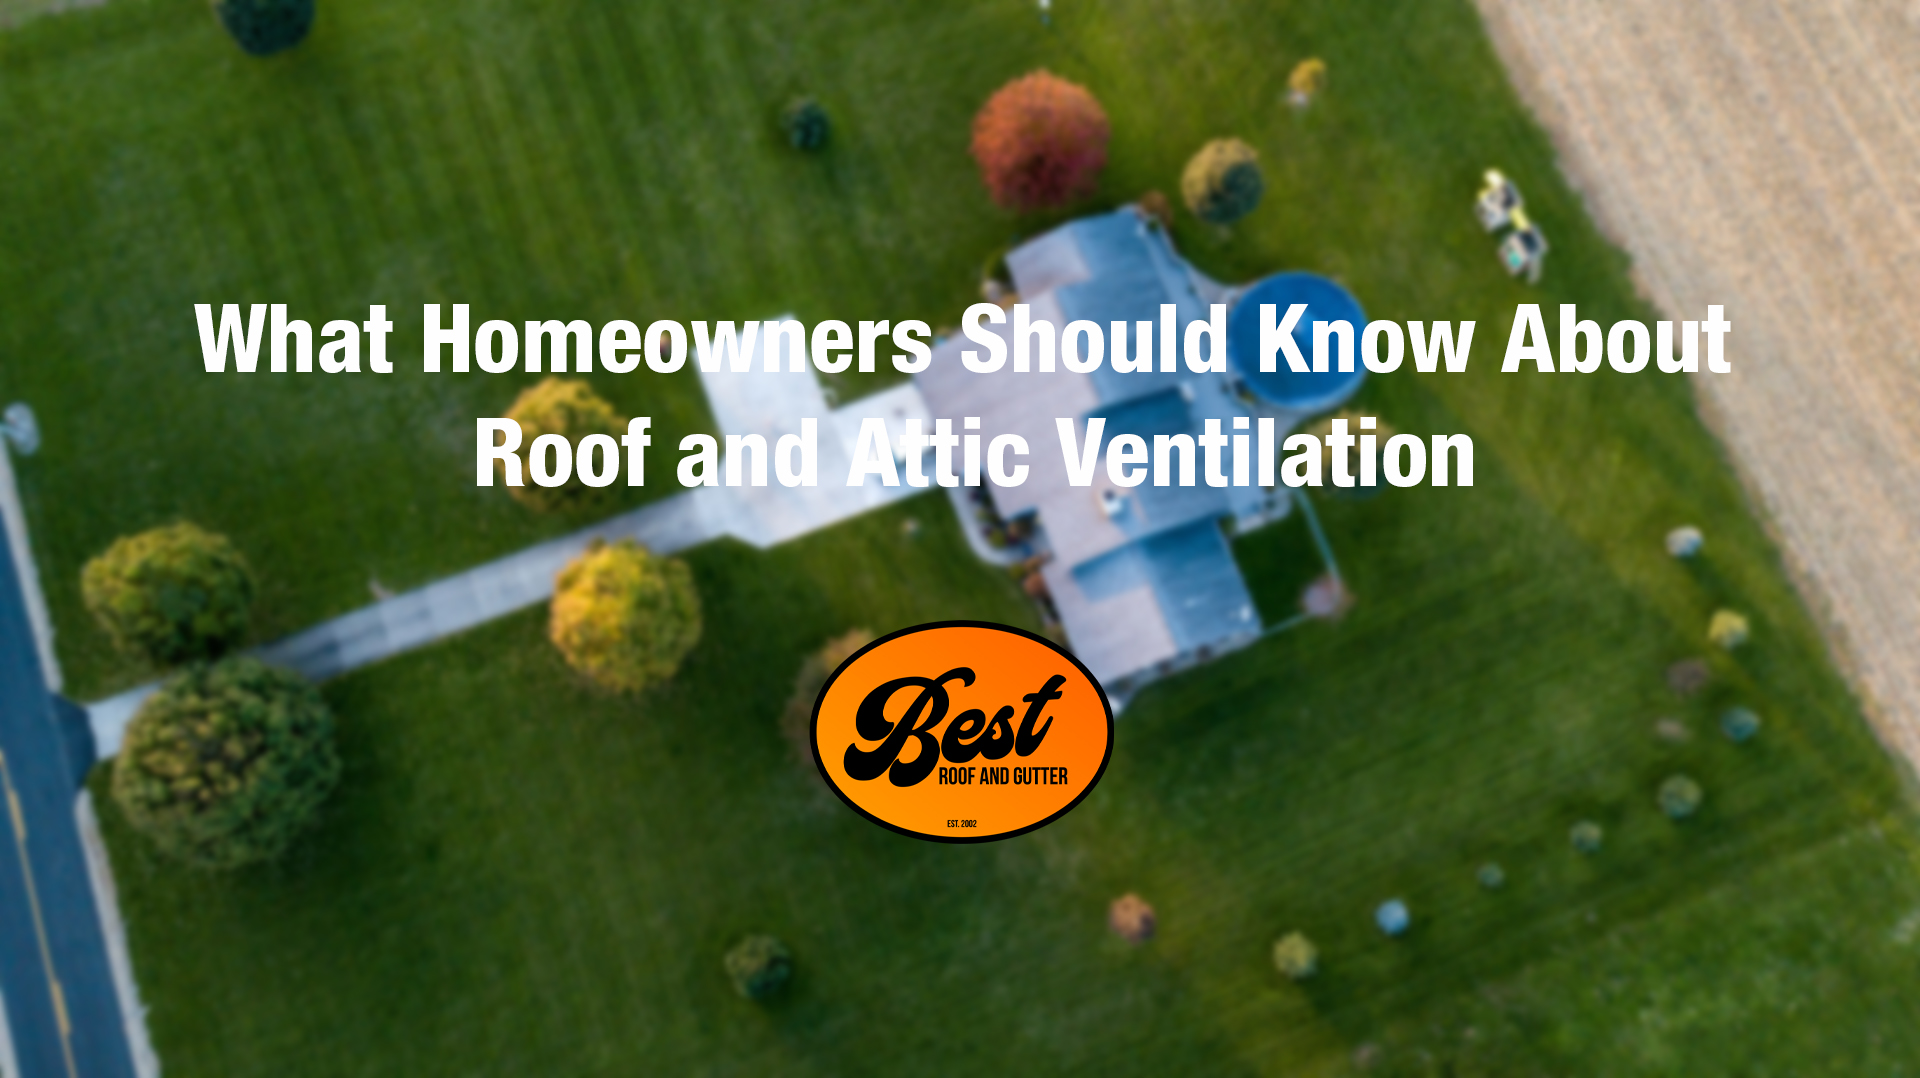 What Homeowners Should Know About Roof and Attic Ventilation